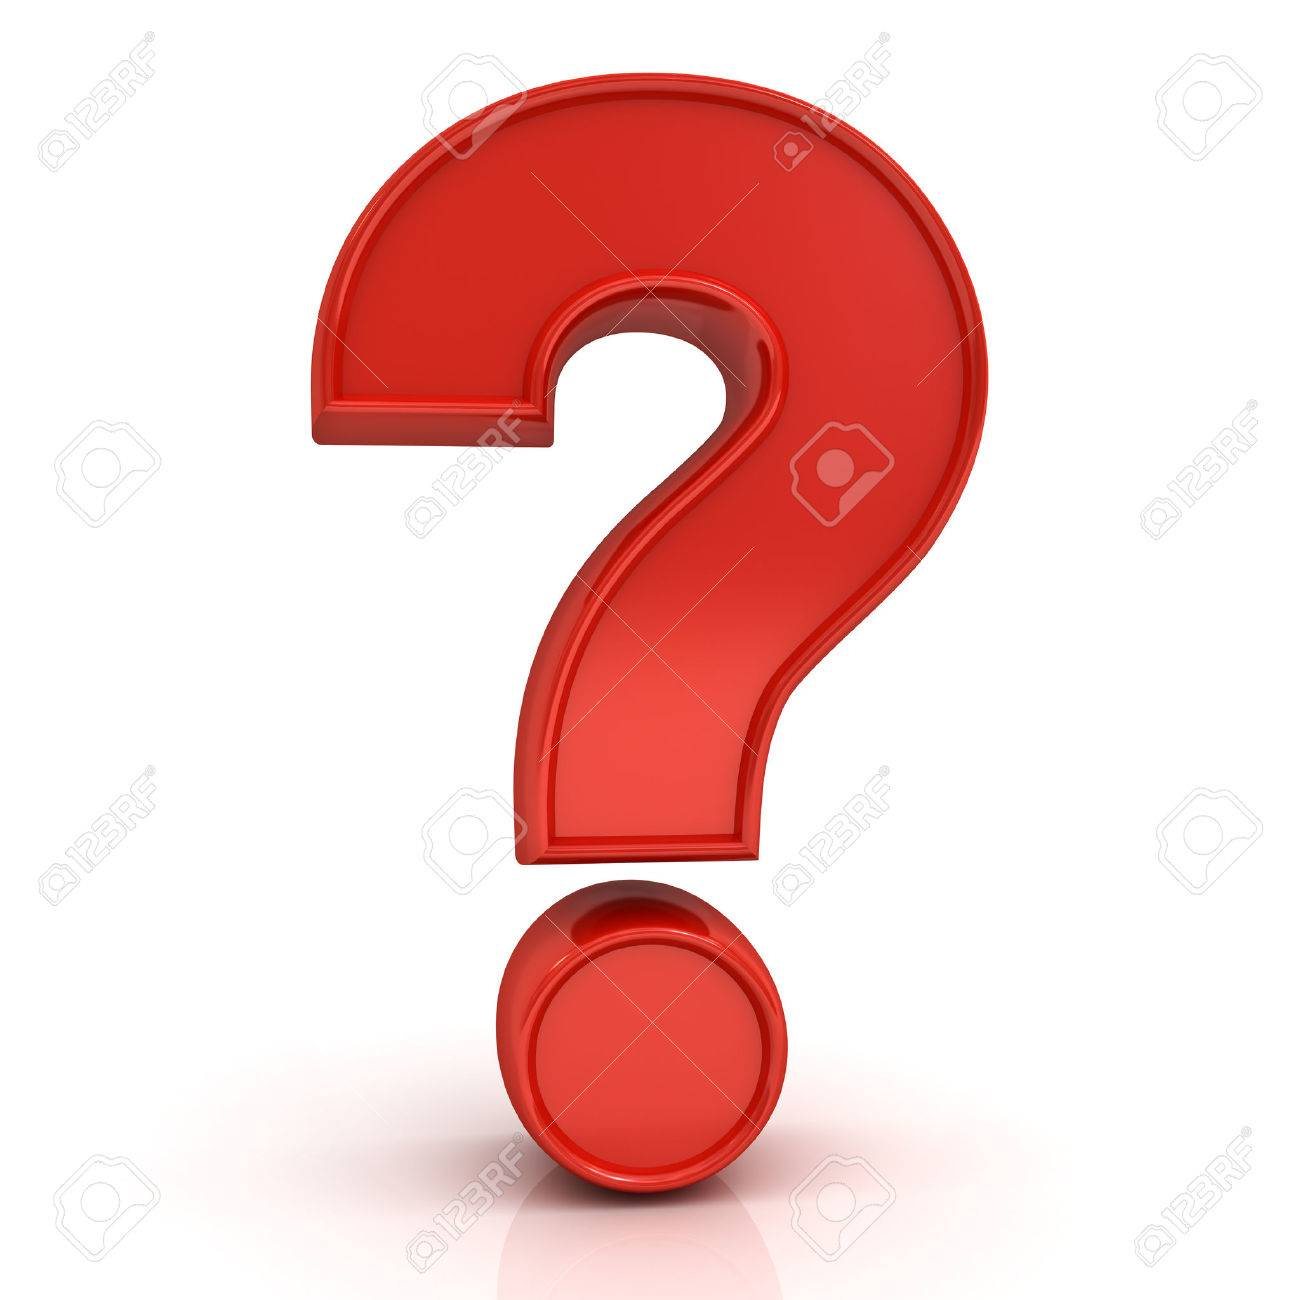 Red question mark isolated over white background with reflection - 54632793